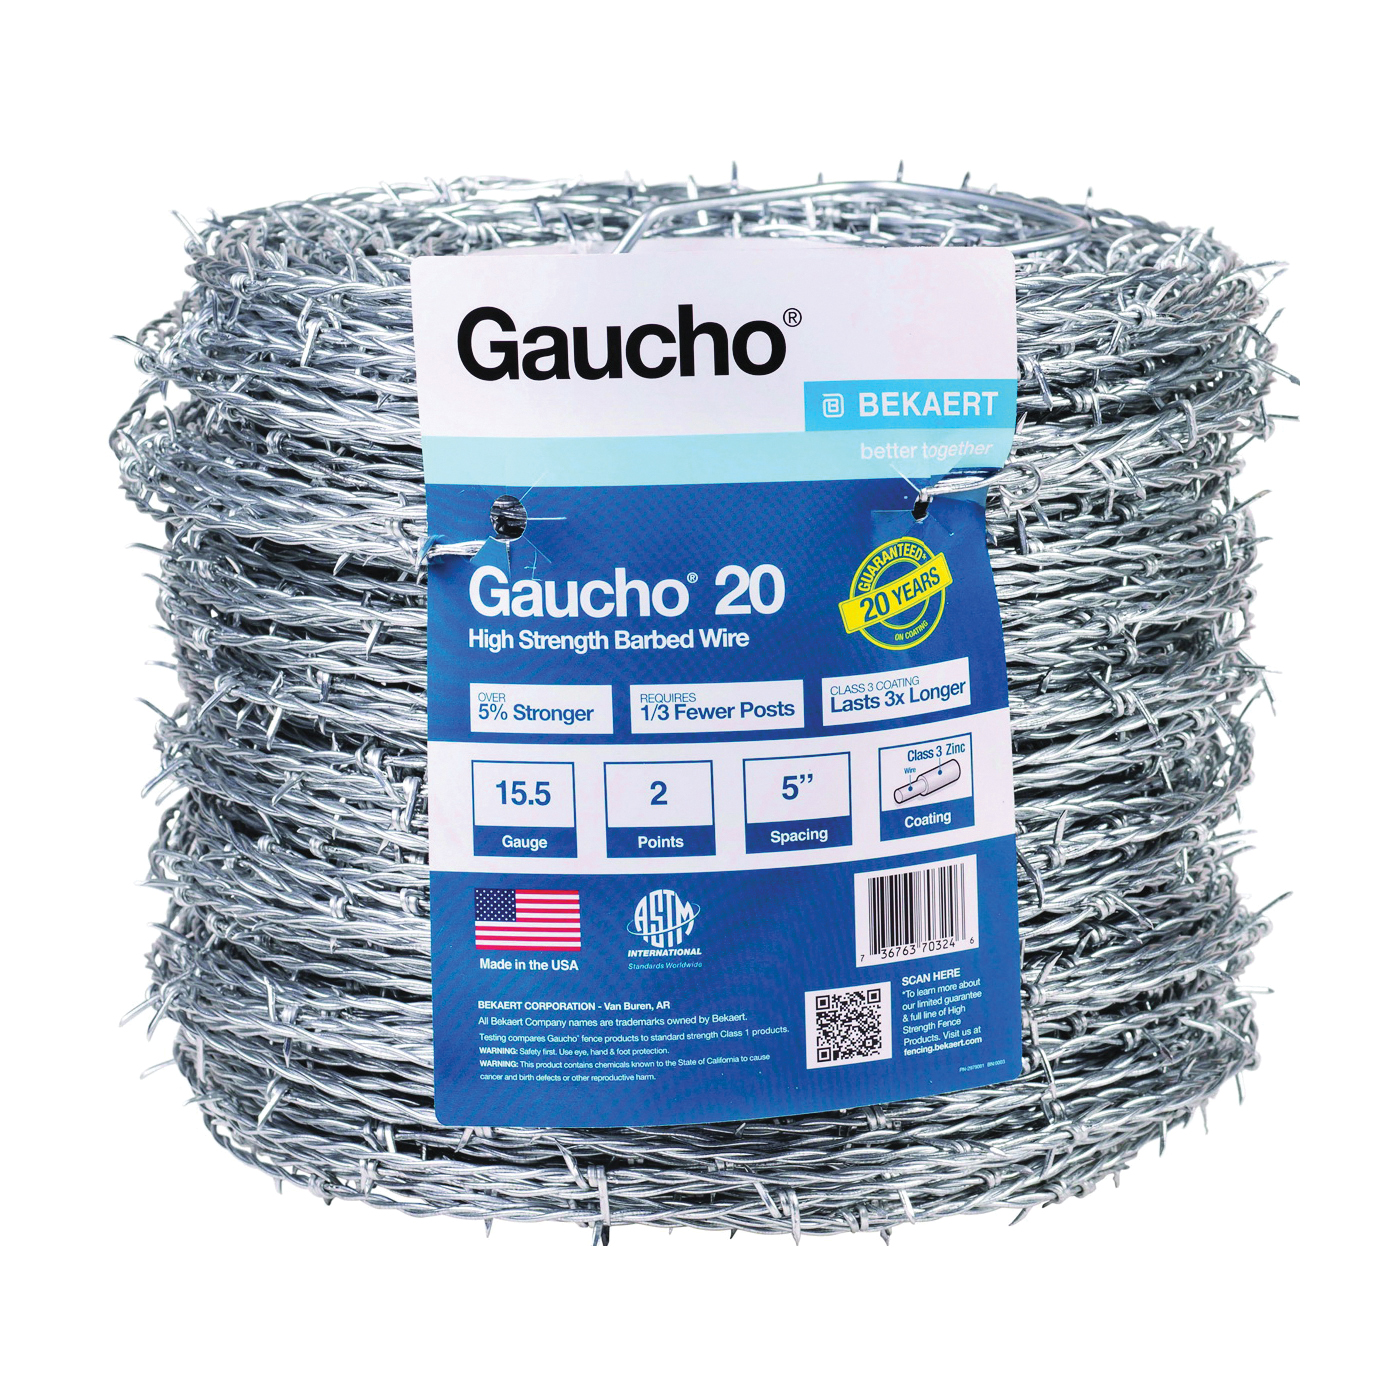 Picture of Gaucho 118290 Barbed Wire, 1320 ft L, 15-1/2 Gauge, Flat Barb, 5 in Points Spacing